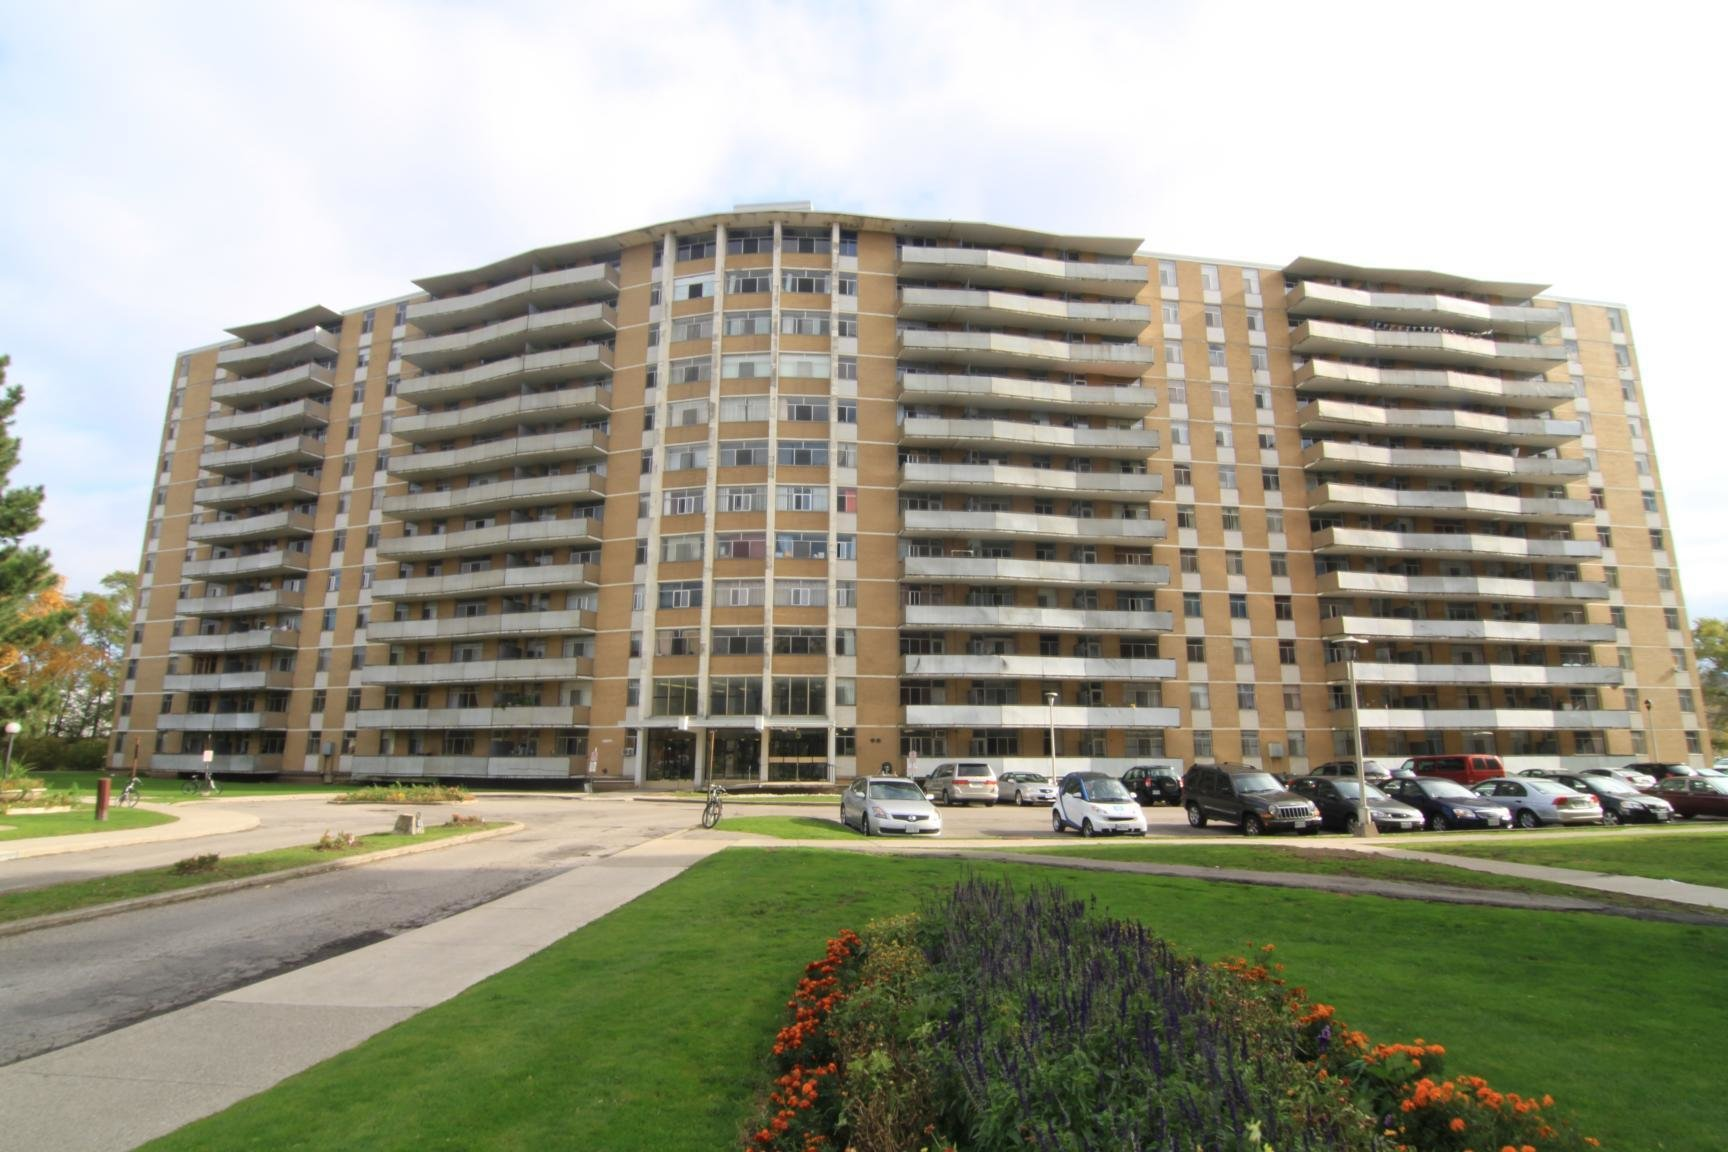 Best One Bedroom Apartments Hamilton Ontario Www Indiepedia Org With Pictures Original 1024 x 768